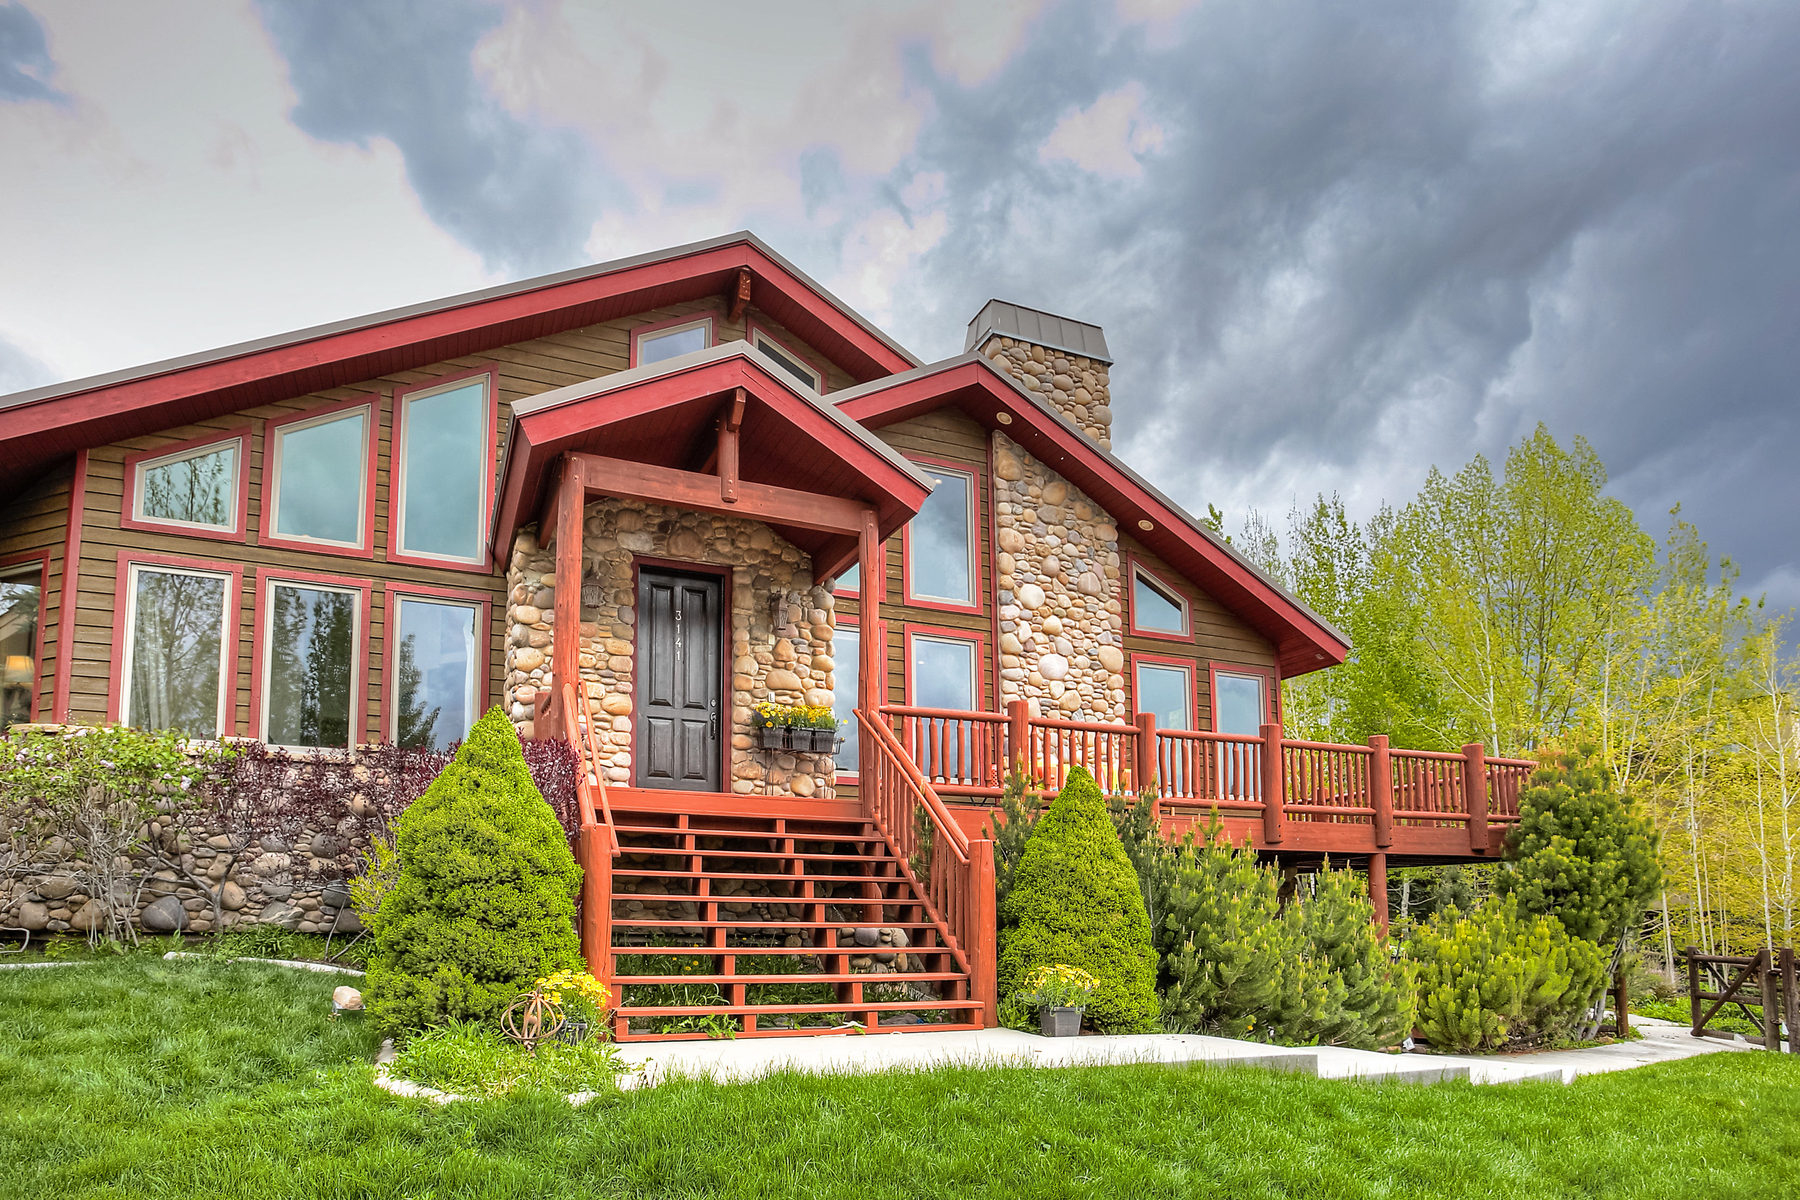 Single Family Home for Sale at Classic Home with Mountain Views 3141 American Saddler Dr Park City, Utah 84060 United States